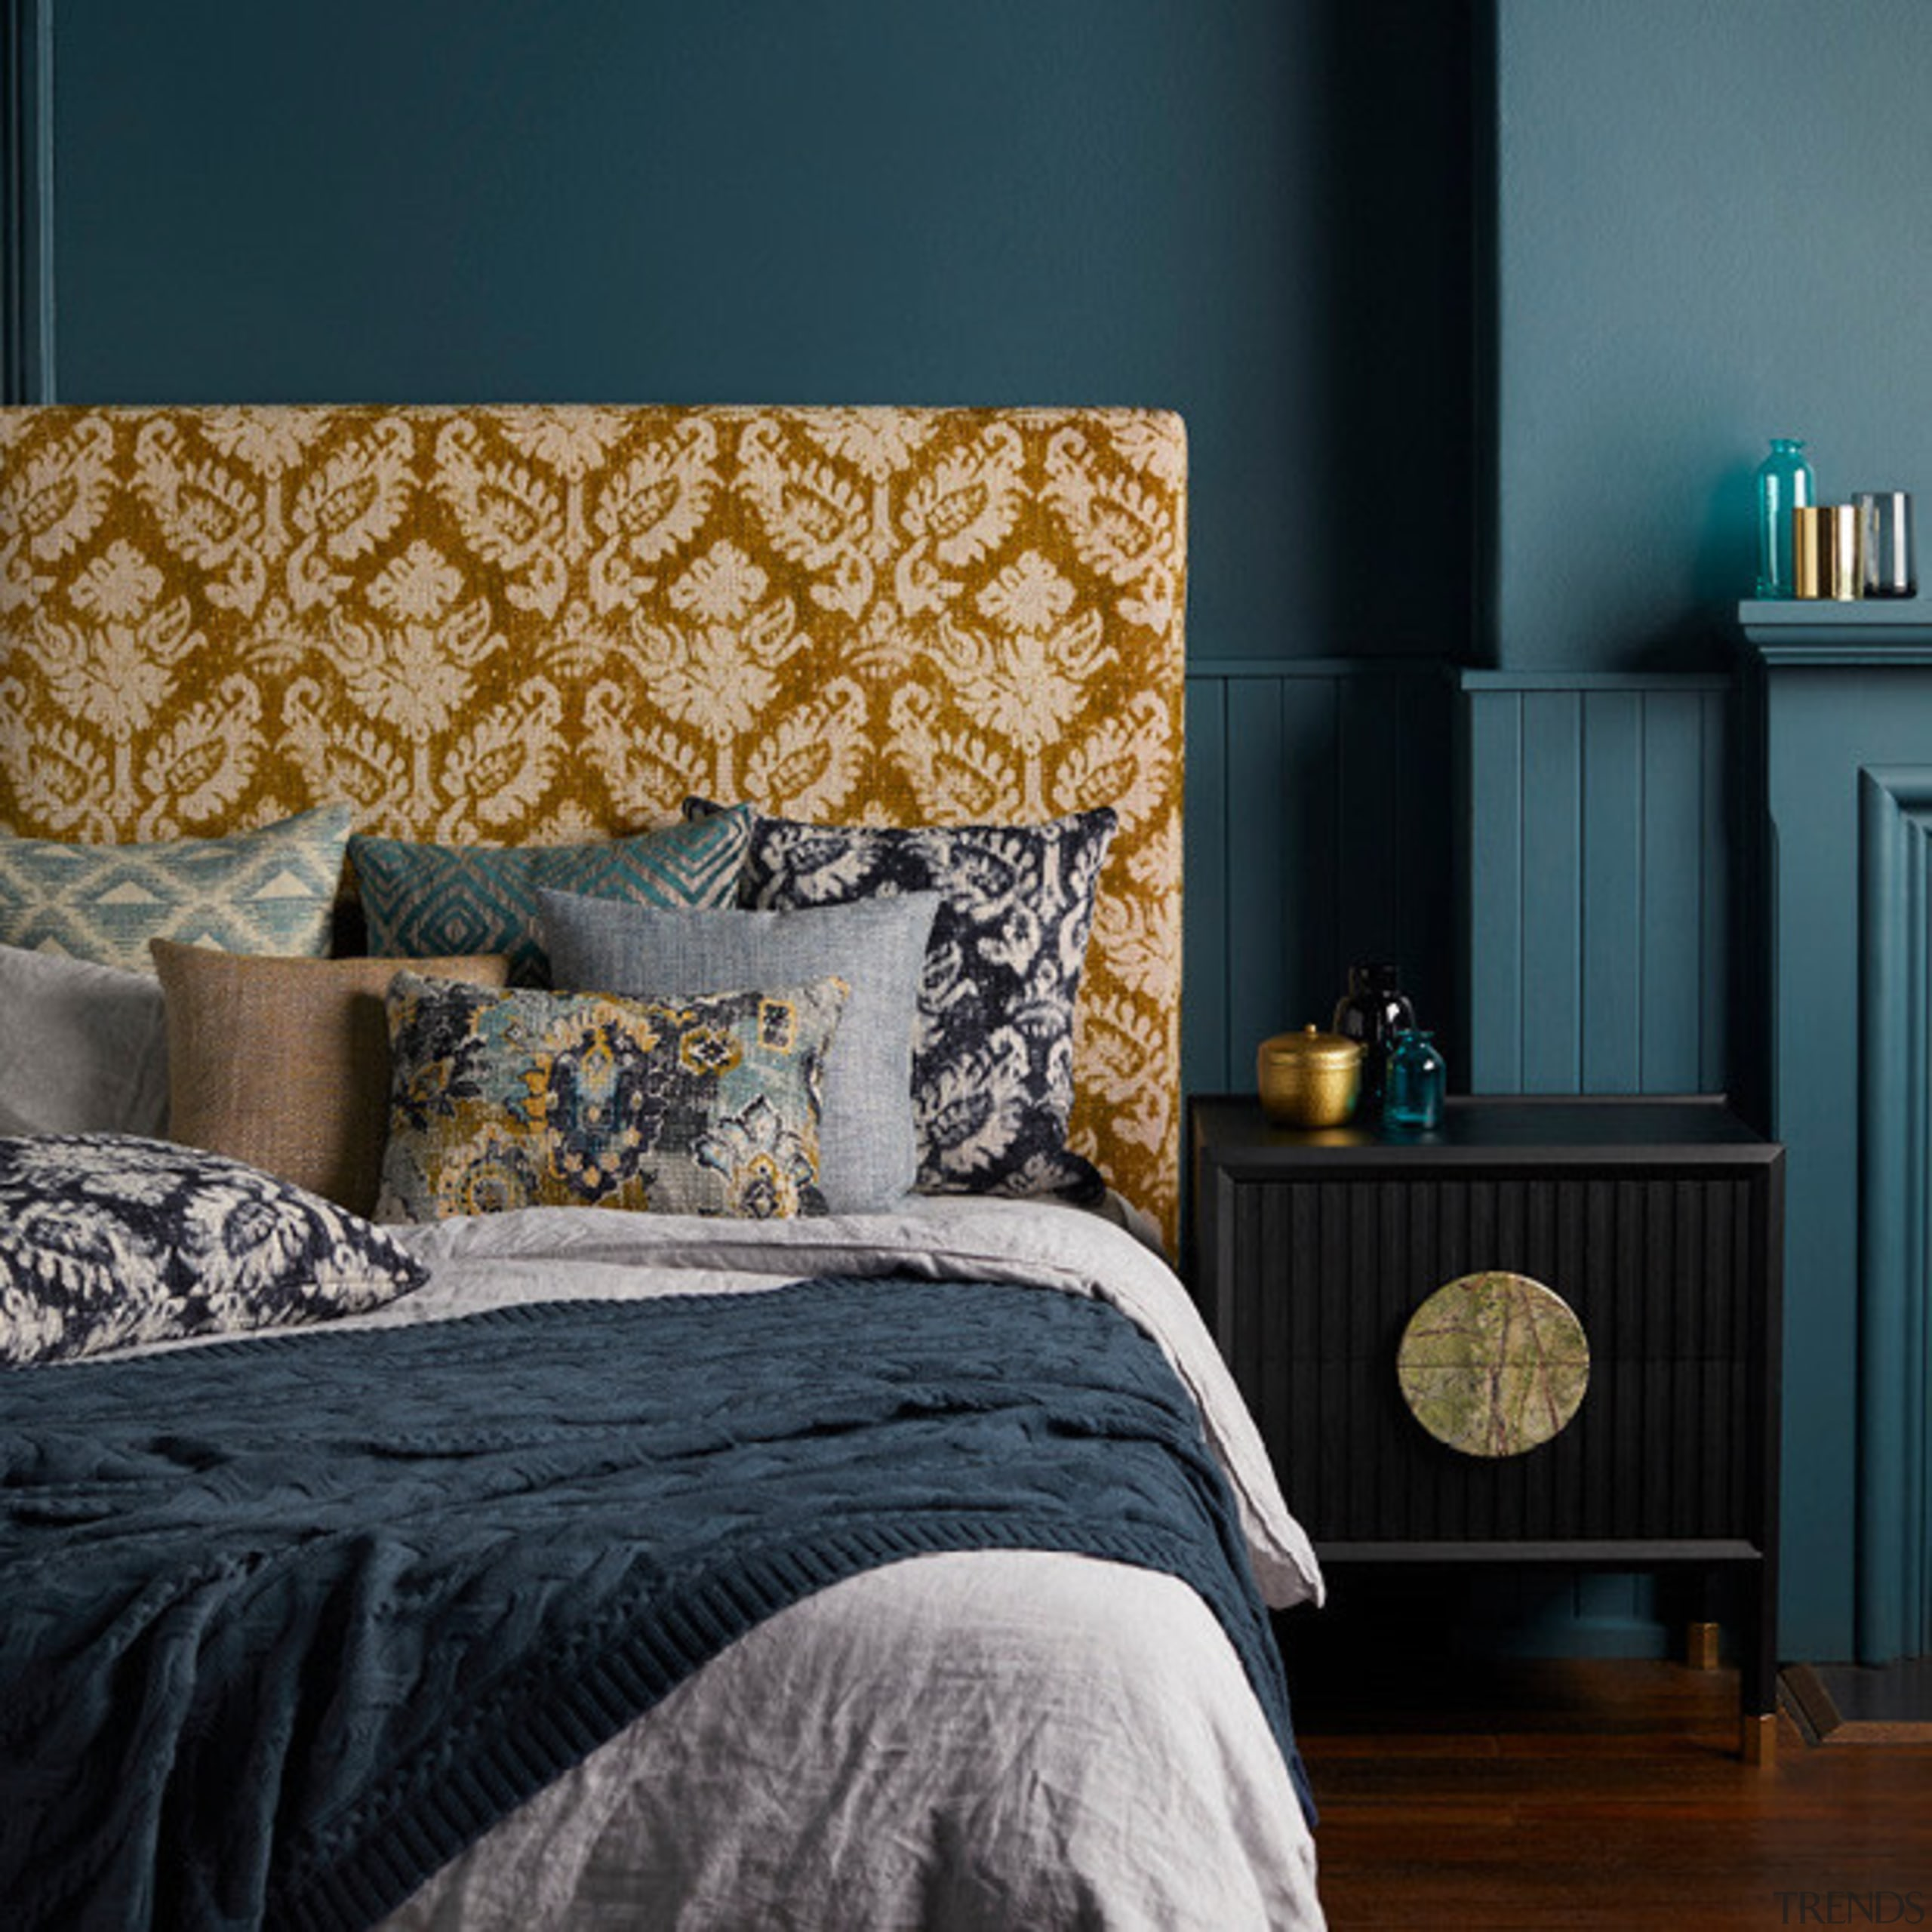 Persian influences and modern interpretations of textured weaves, bed, bed frame, bed sheet, bedding, bedroom, blue, duvet cover, home, interior design, linens, living room, room, textile, wall, window, black